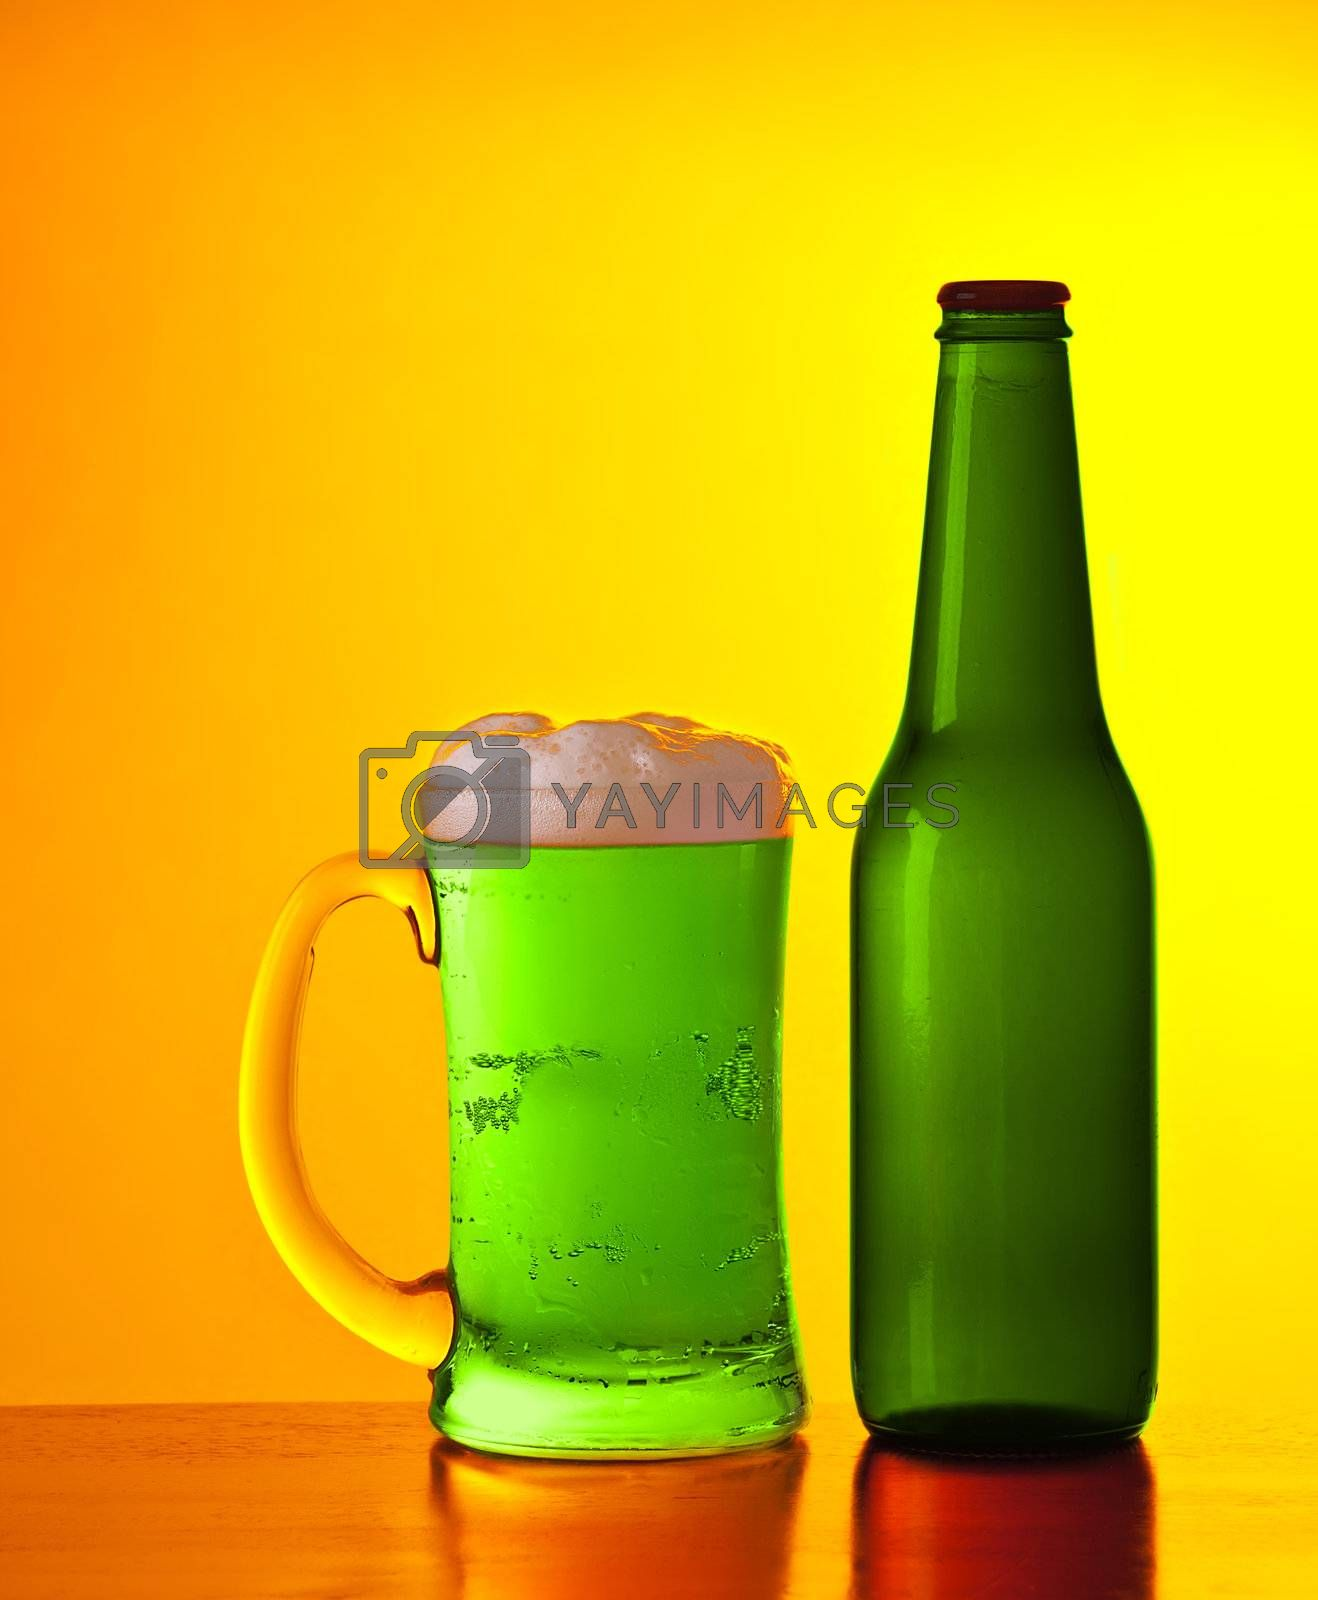 Glass of cold green Irish beer drink isolated on yellow warm background, festival of beer, traditional alcohol for st.Patrick's day holiday celebration, lucky clover beverage, studio still life